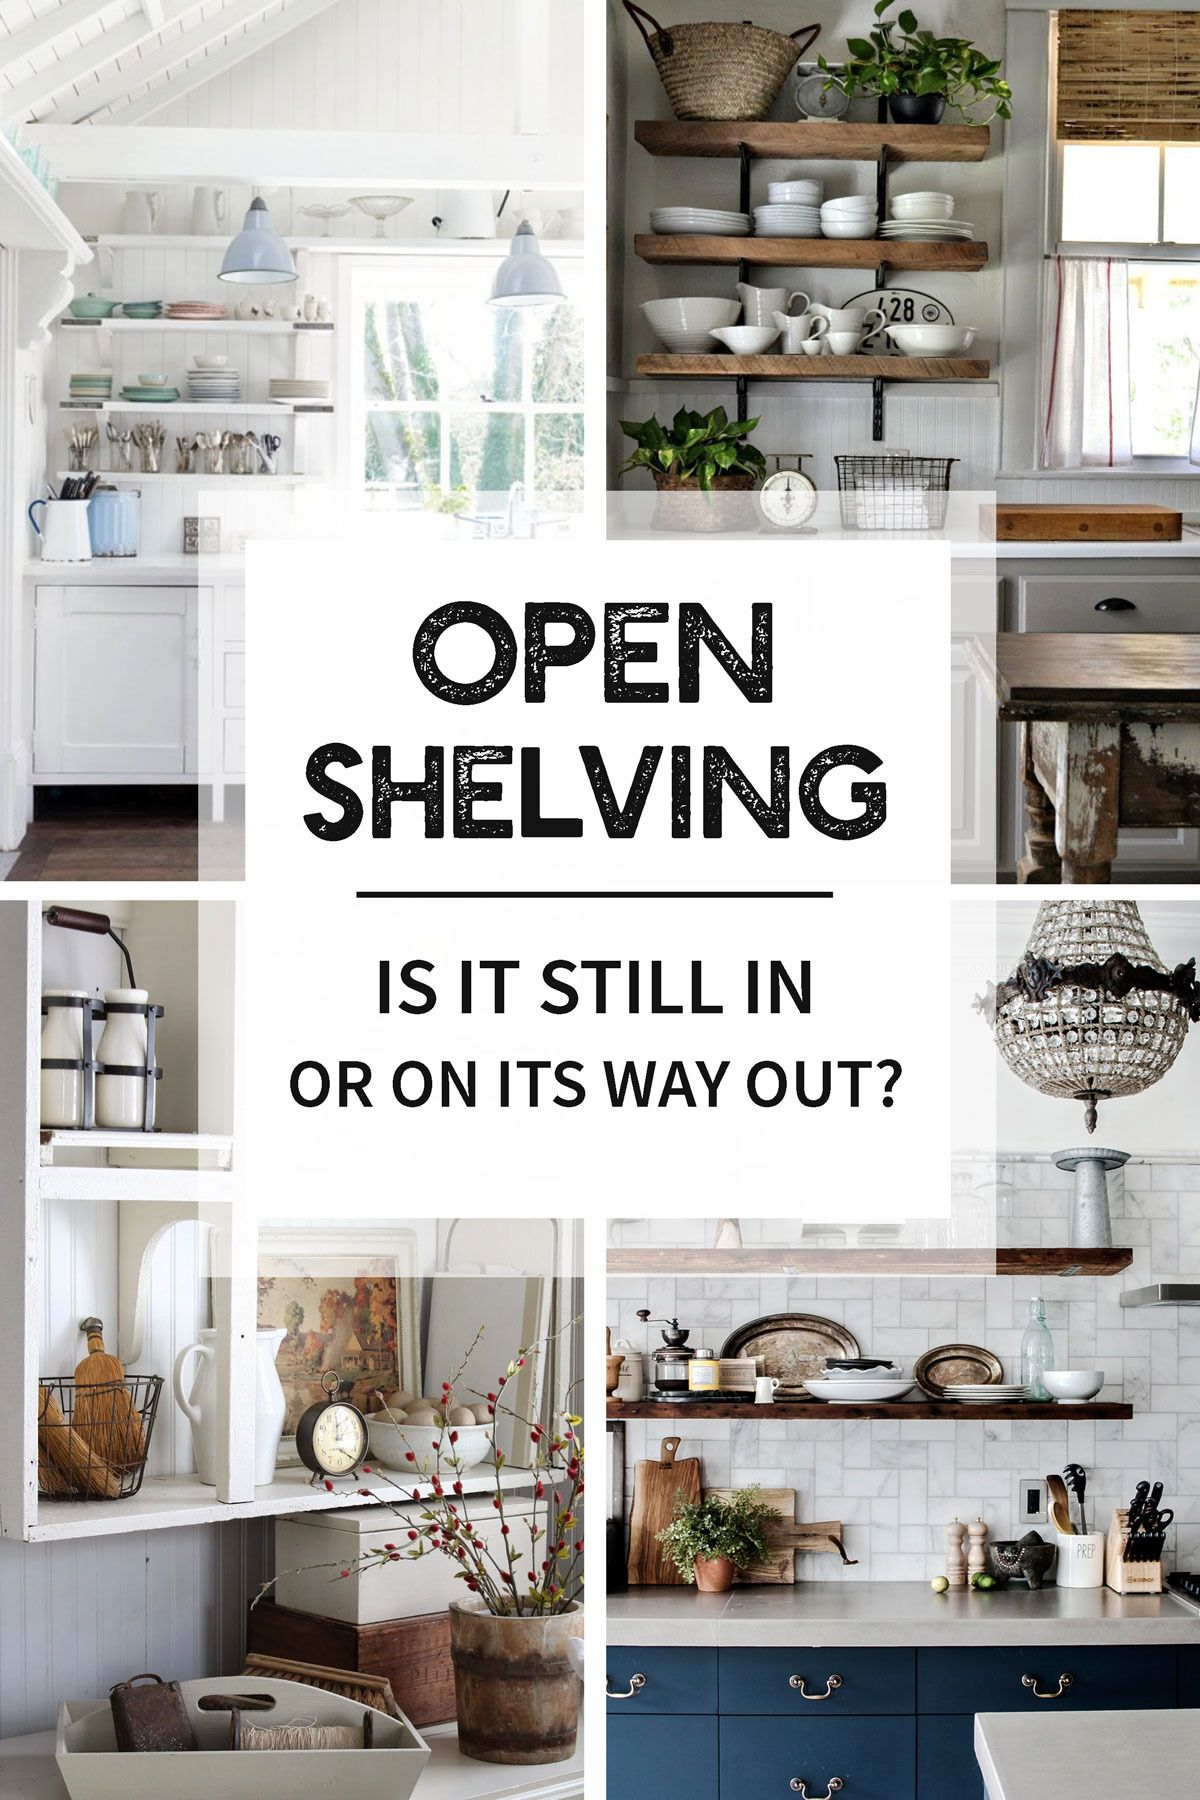 Open Kitchen Cabinets No Doors 2021 In 2020 Open Shelving Kitchen Cabinets Open Shelving Open Kitchen Shelves